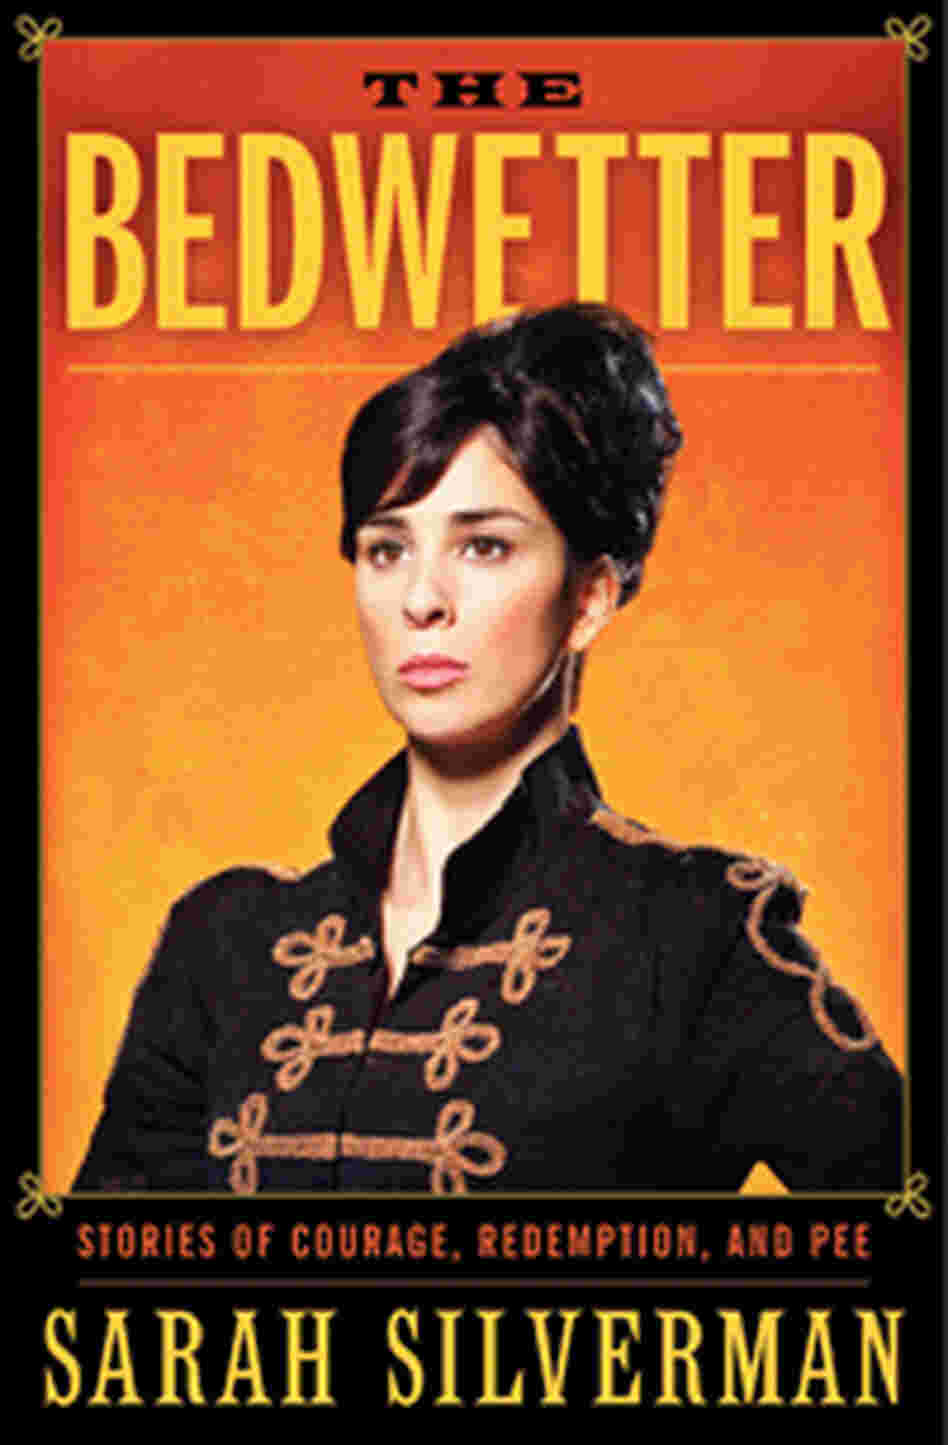 The Bedwetter